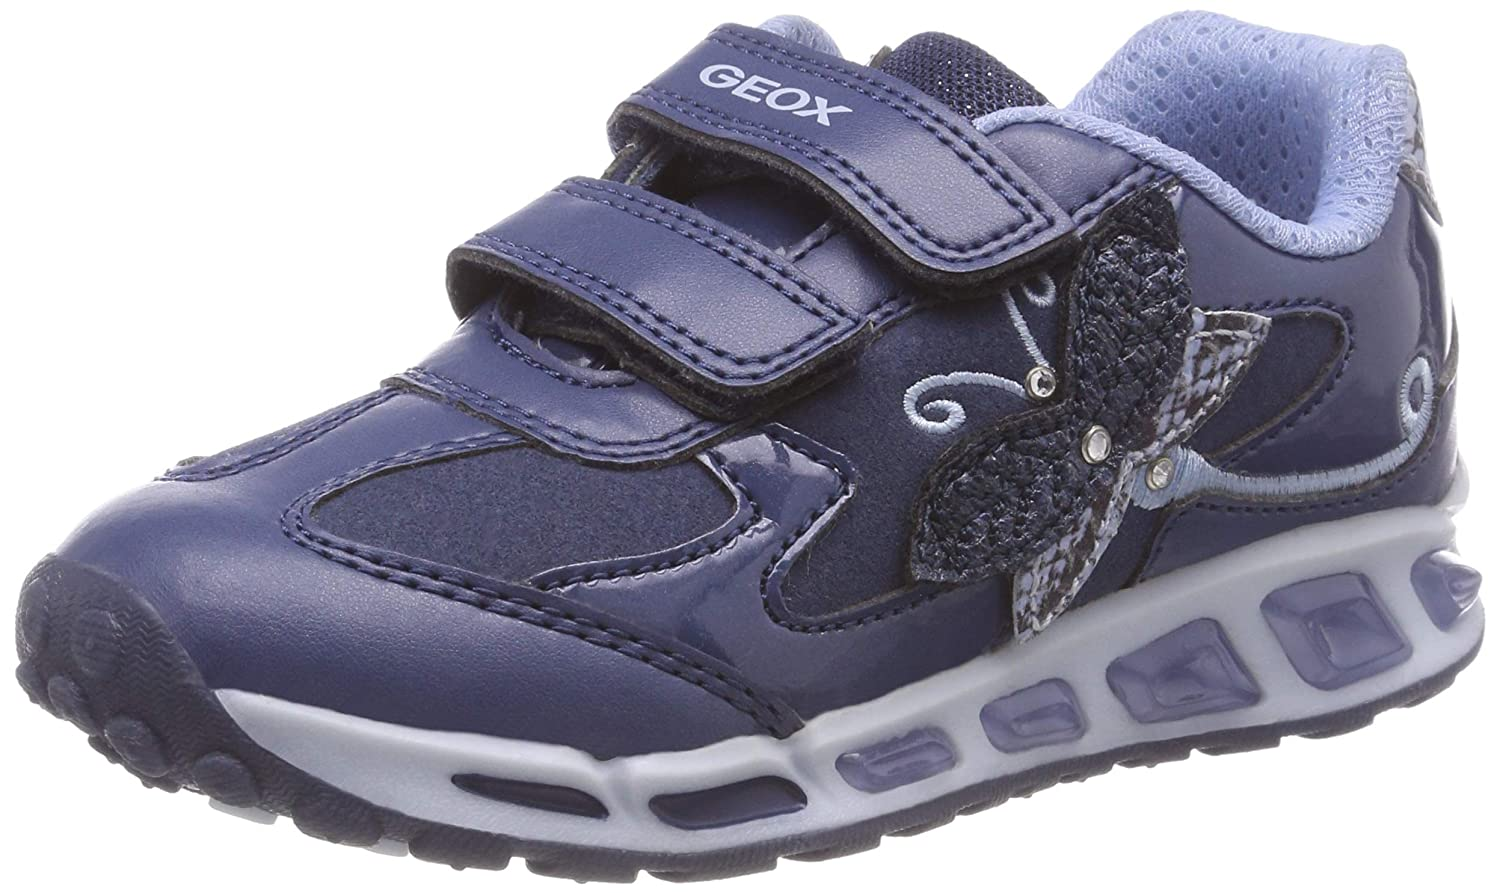 geox shoes price shop, Kids Trainers Geox SHUTTLE Trainers